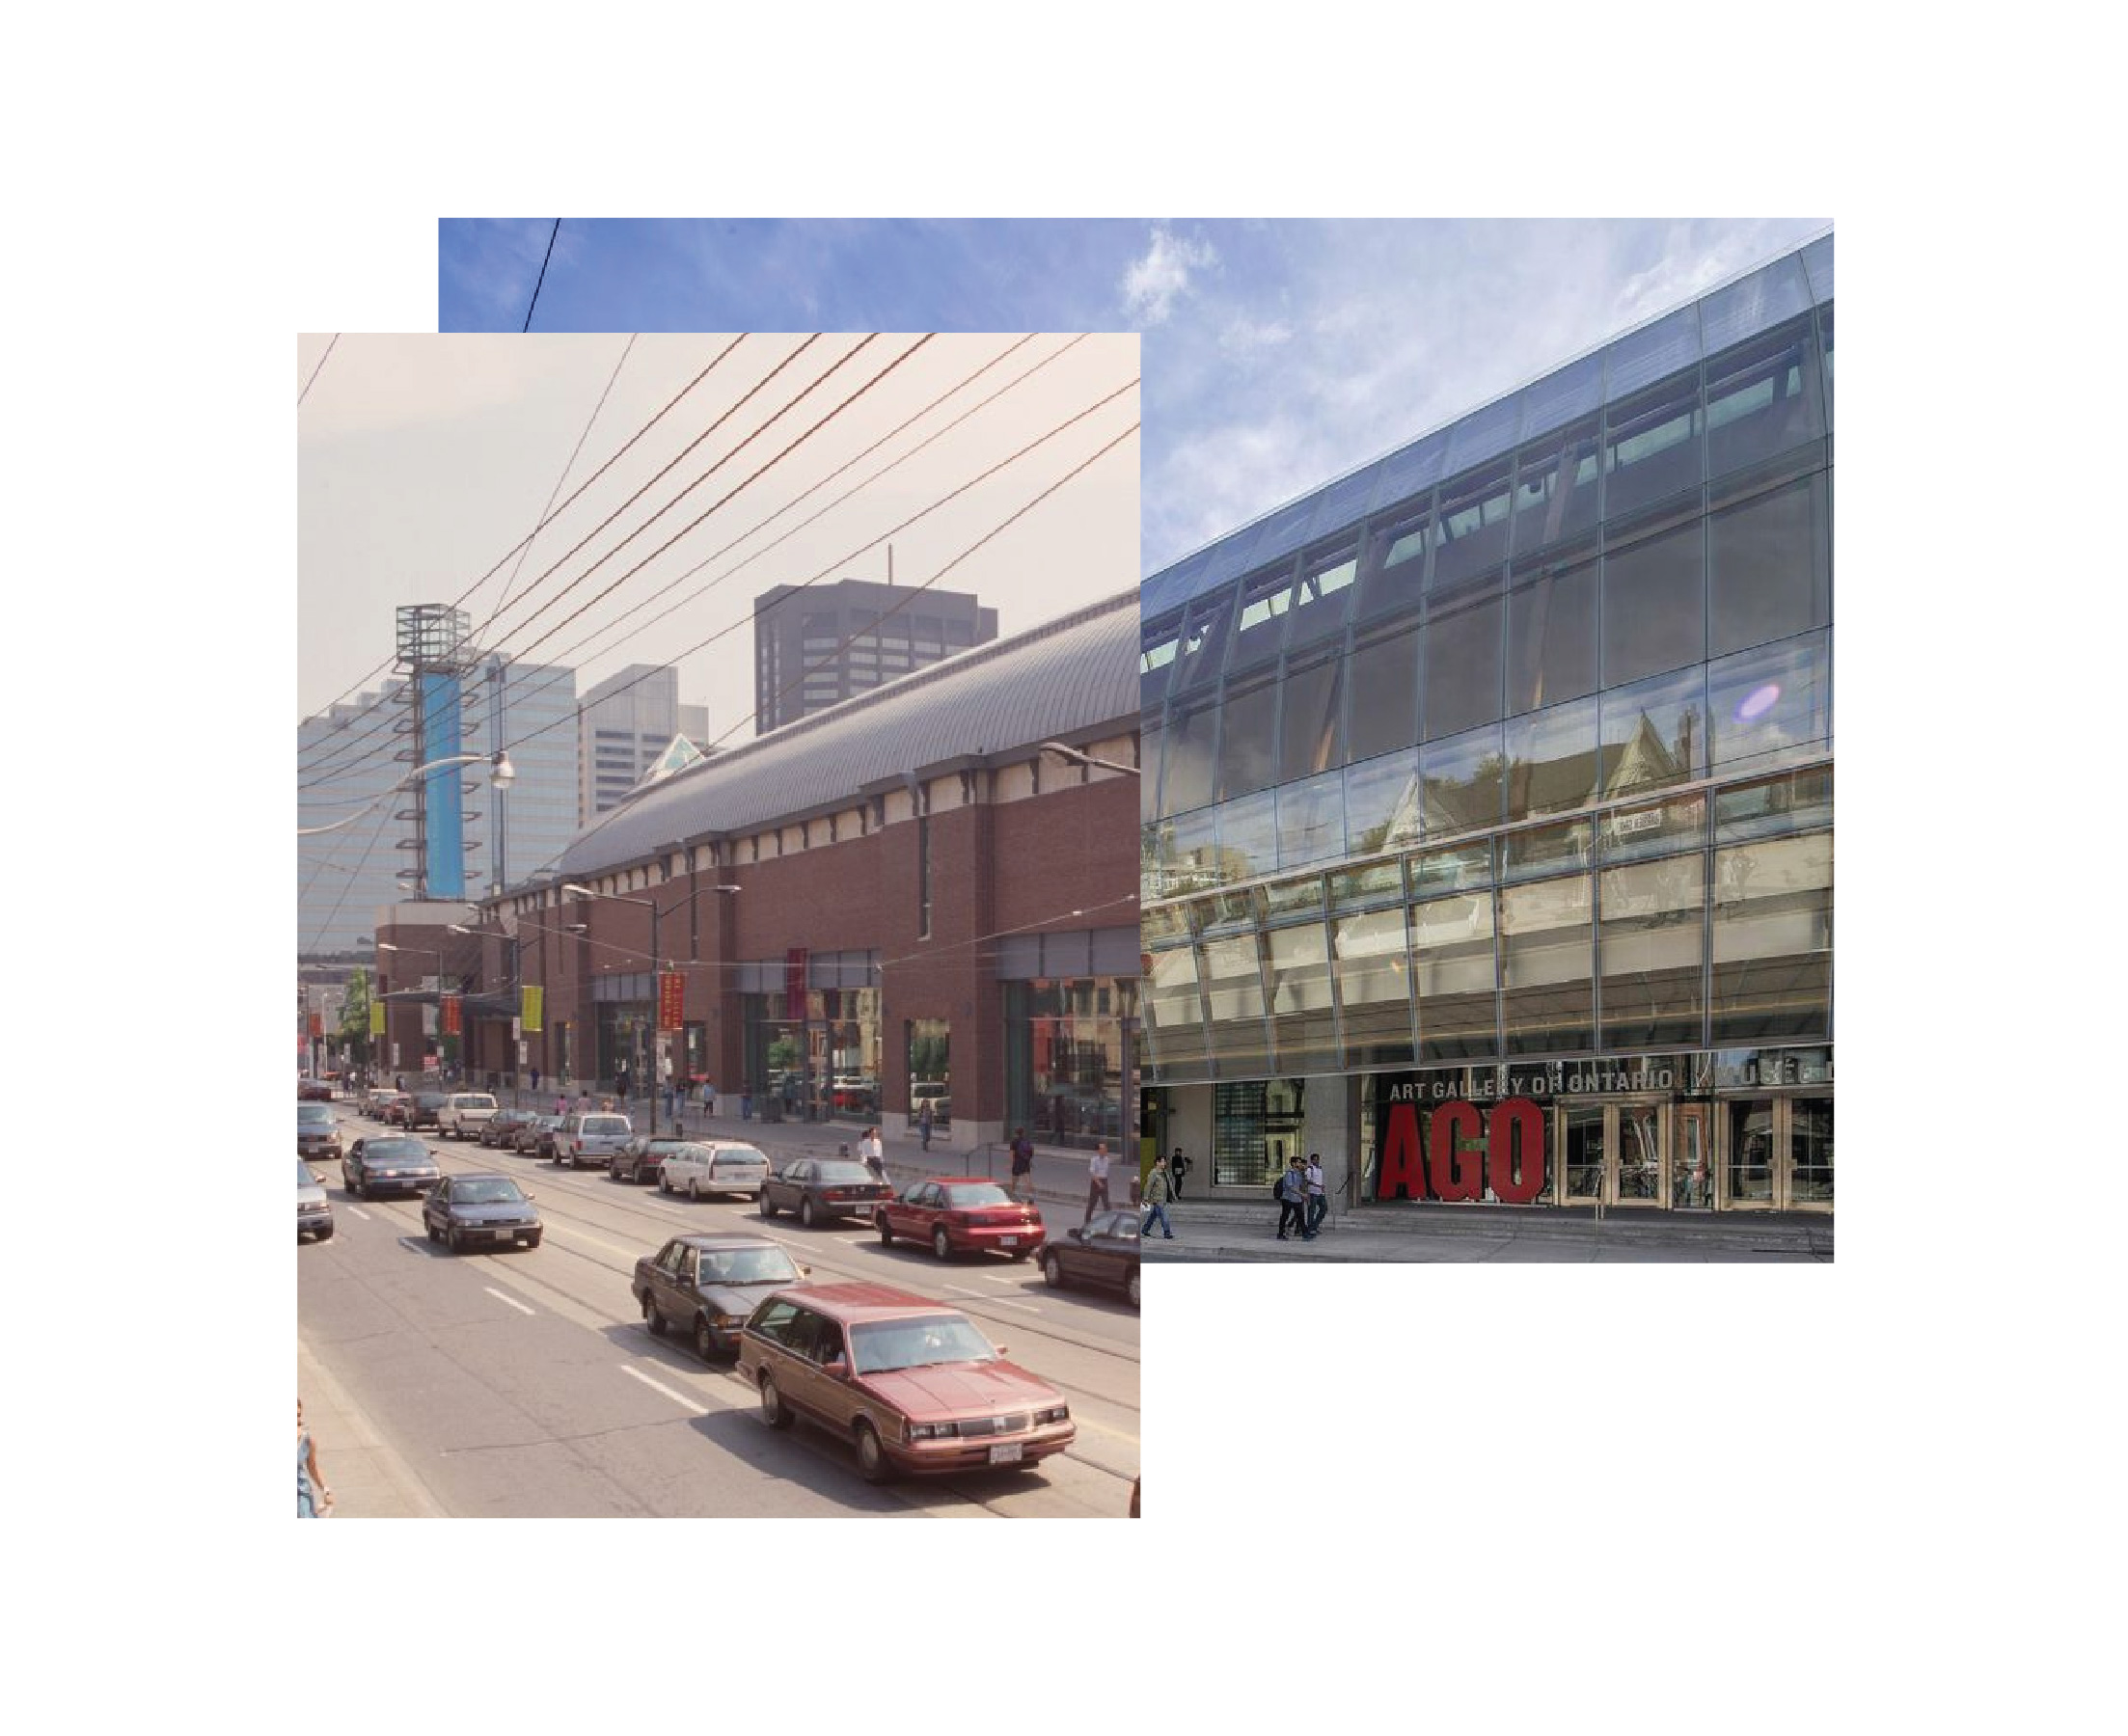 image of Art Gallery of Ontario exterior, past and present-day